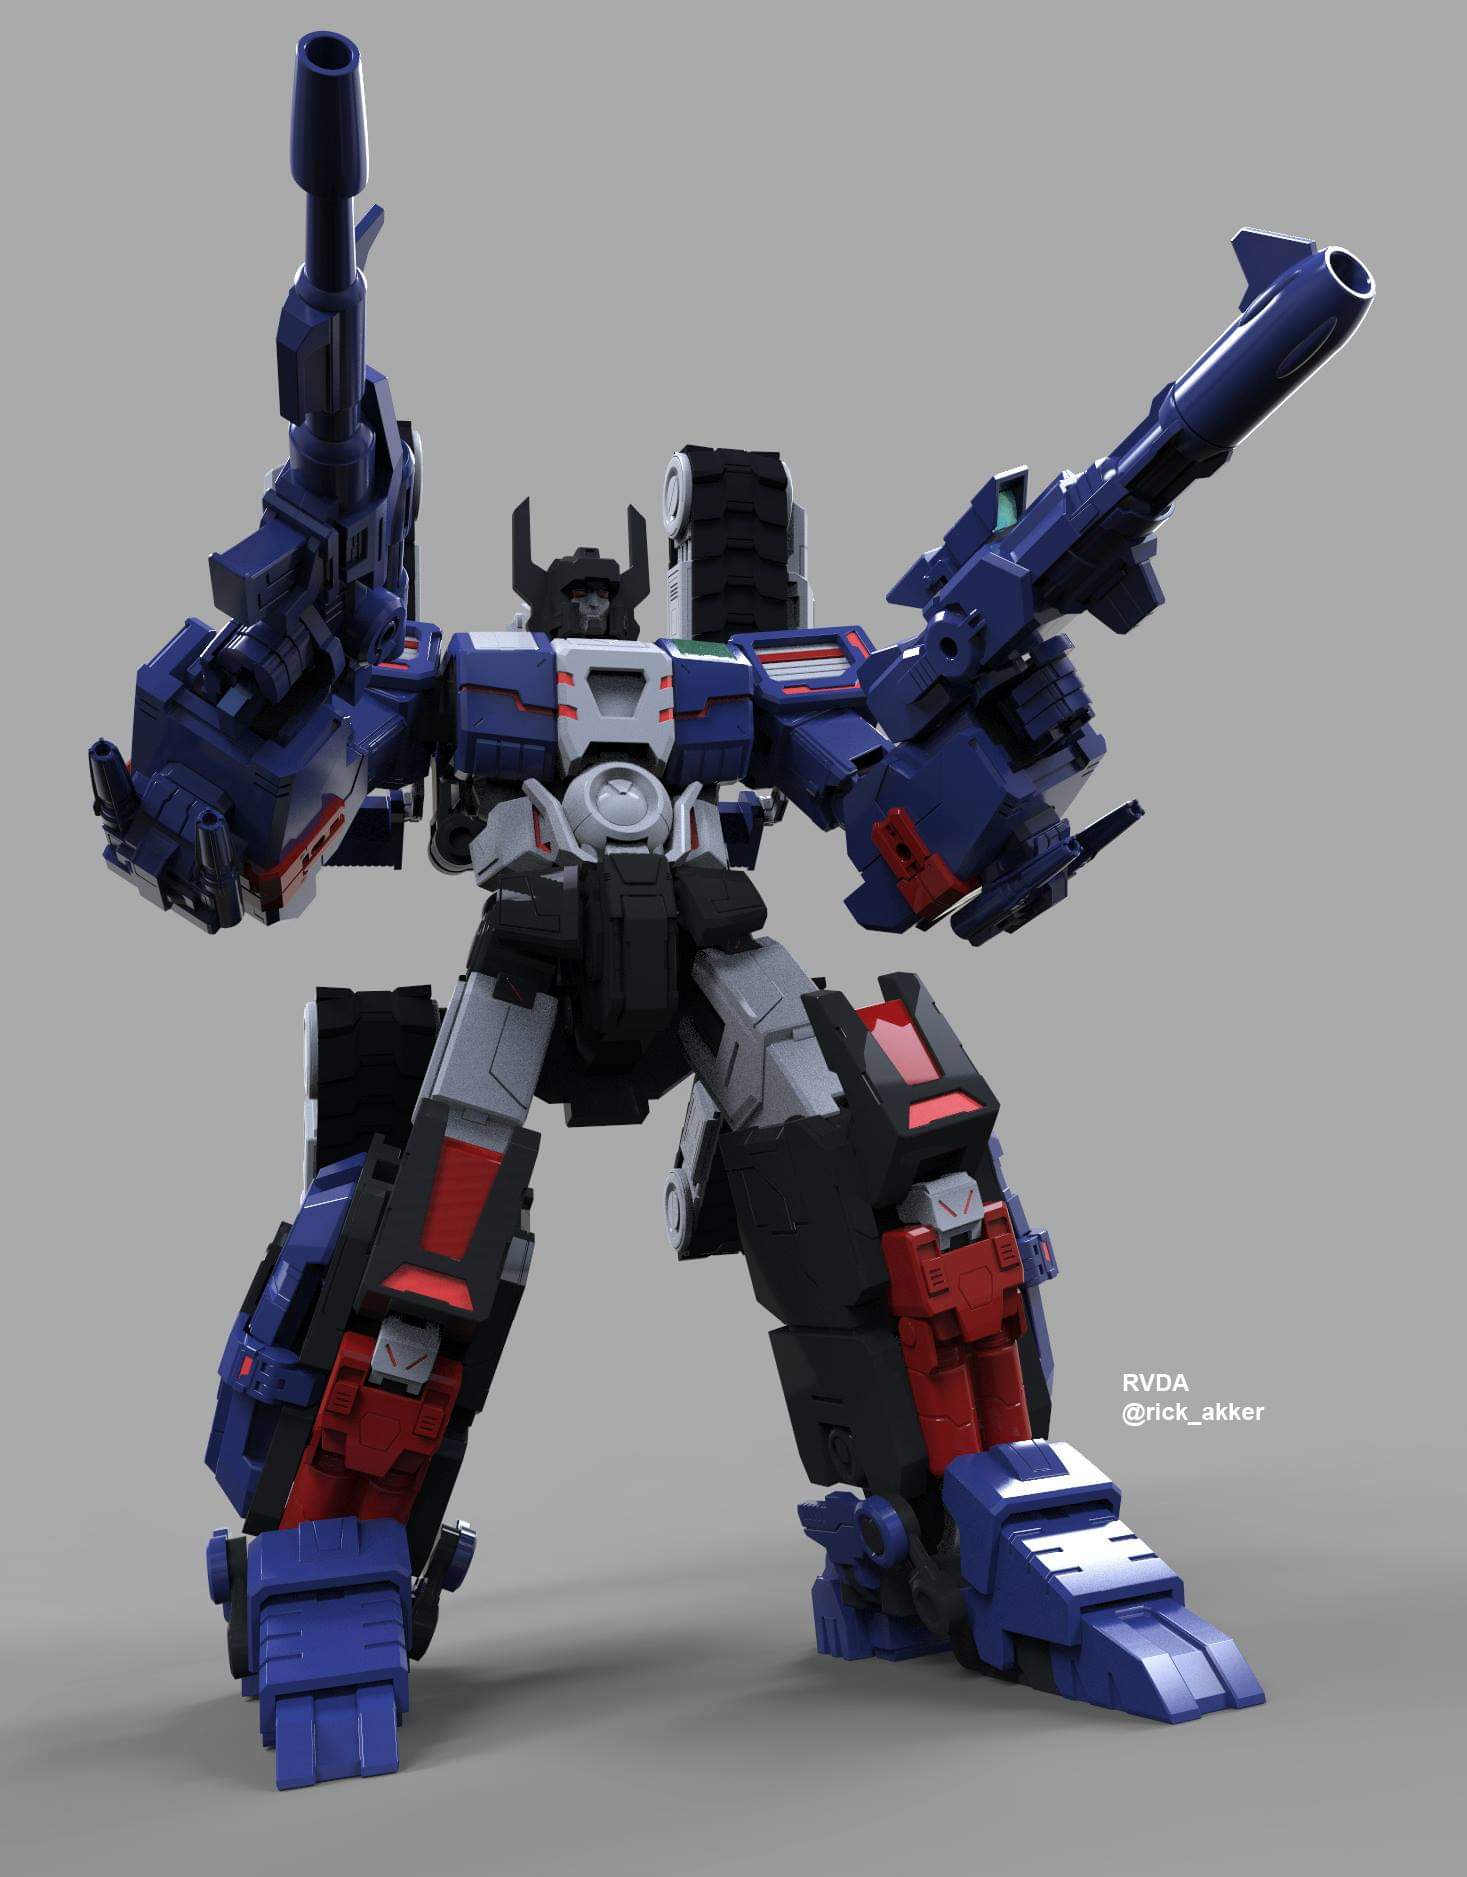 [Mastermind Creations] Produit Tiers - R-50 Supermax - aka Fortress/Forteresse Maximus des BD IDW Ukfg3Bkt_o